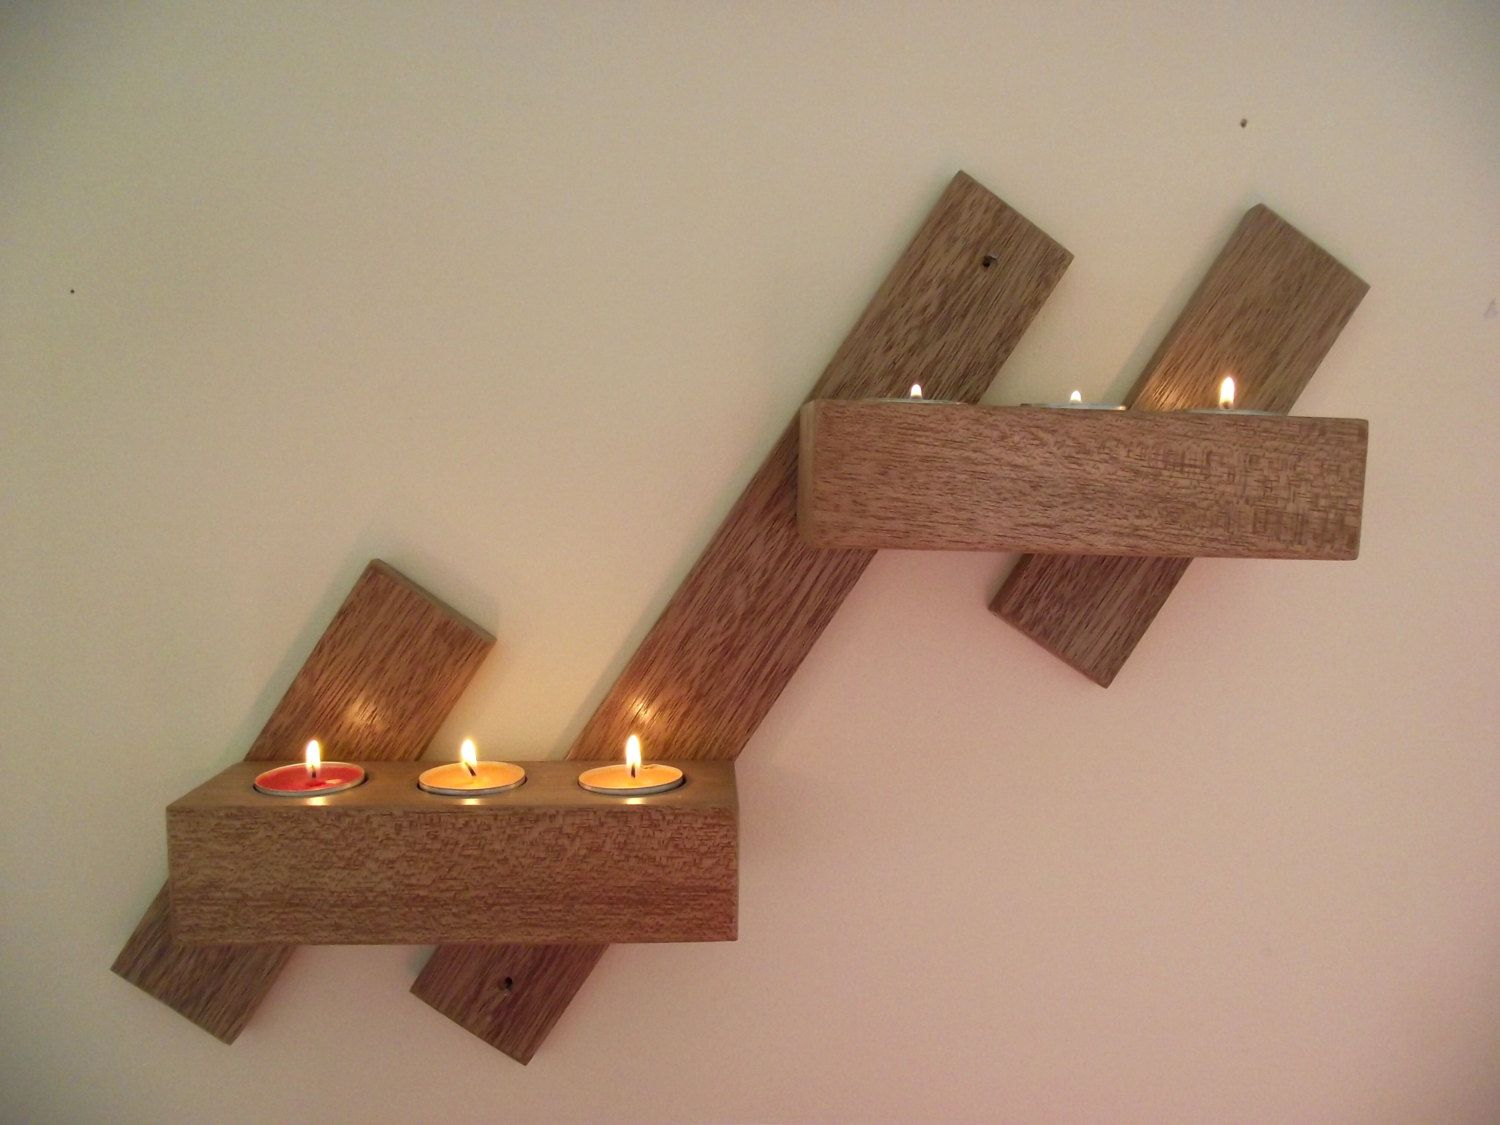 wall hanging mahogany or oak candle holderwall candle holders  - wall hanging mahogany or oak candle holderwall candle holders wooden wallsconceshanging tealigt holdermodern decorrustic style